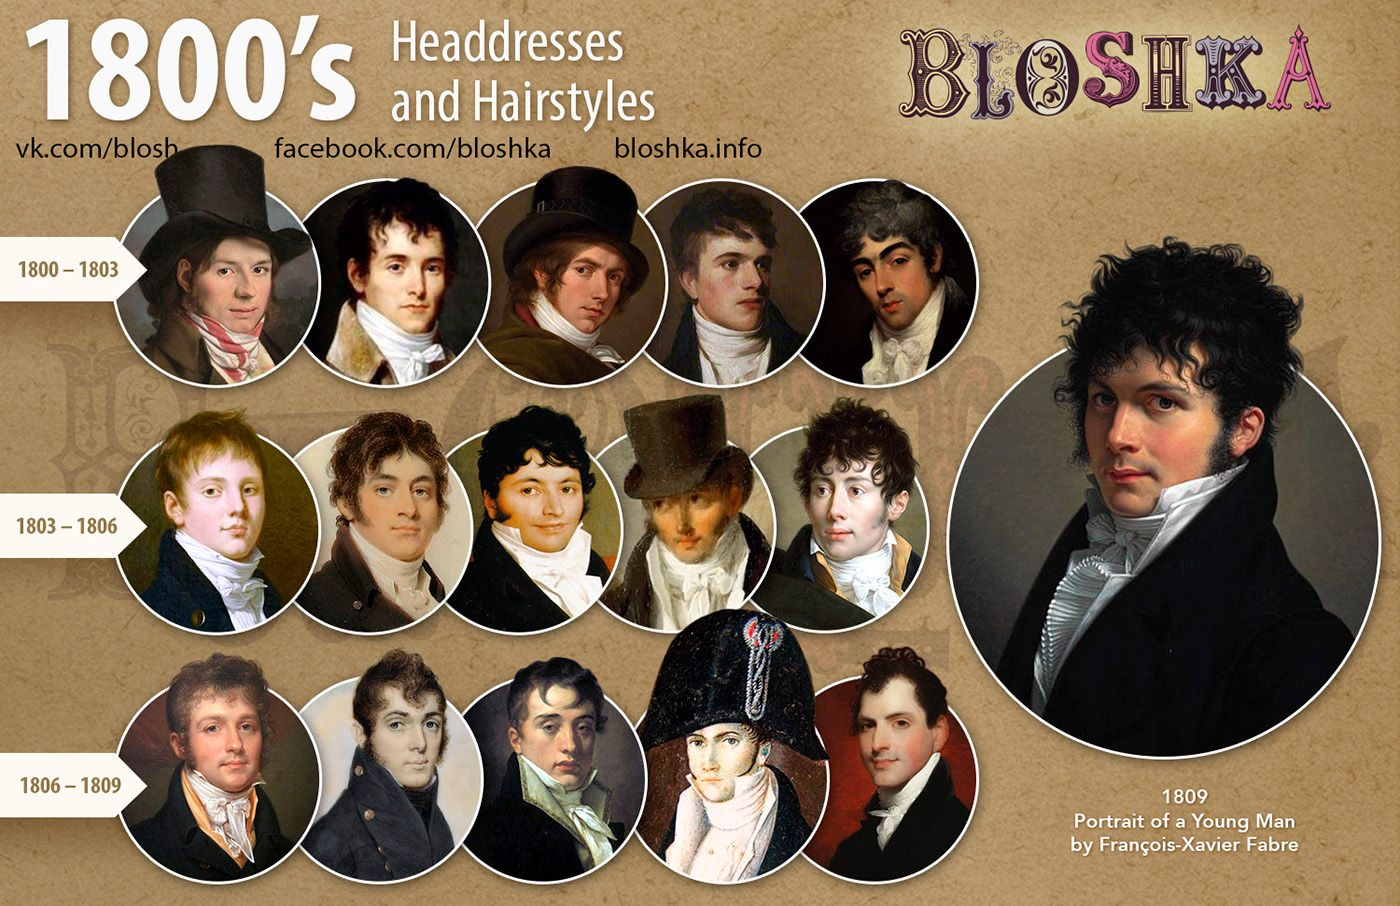 19th century. men's headdresses and hairstyles. 1800's | xix